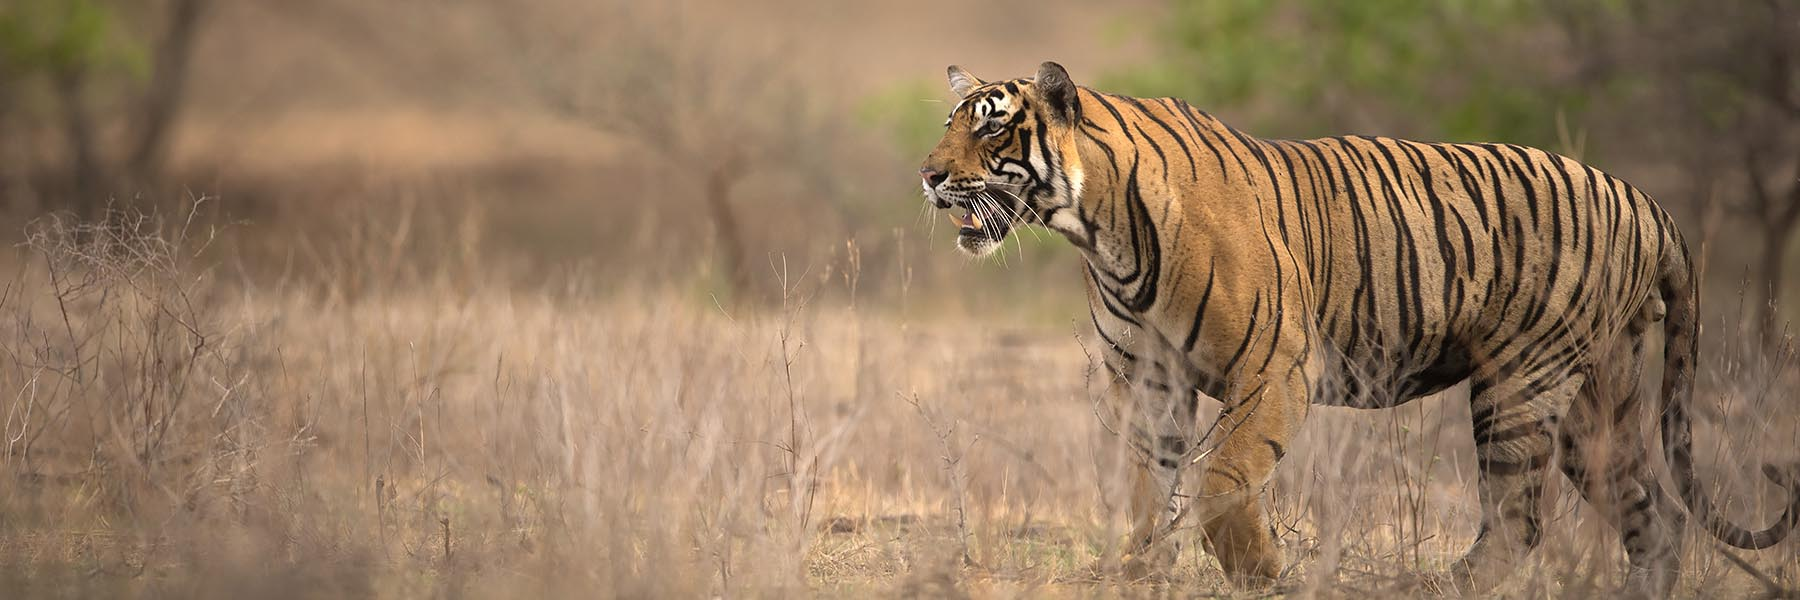 Ranthambhore Tiger Kill – A story in pictures